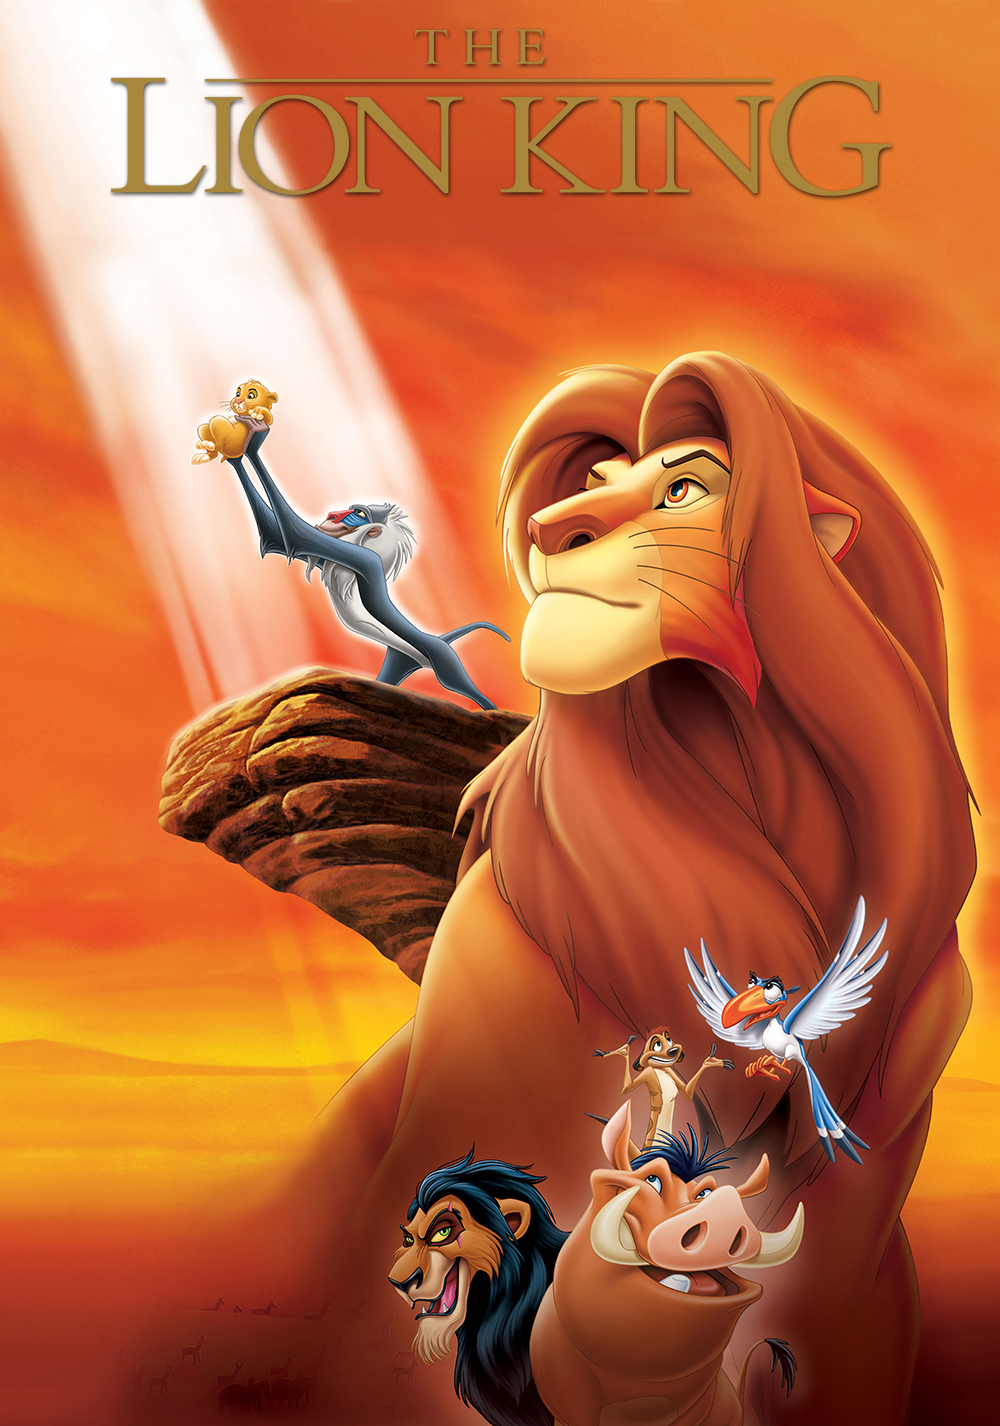 Quotes Of The Lion King Quotesaga